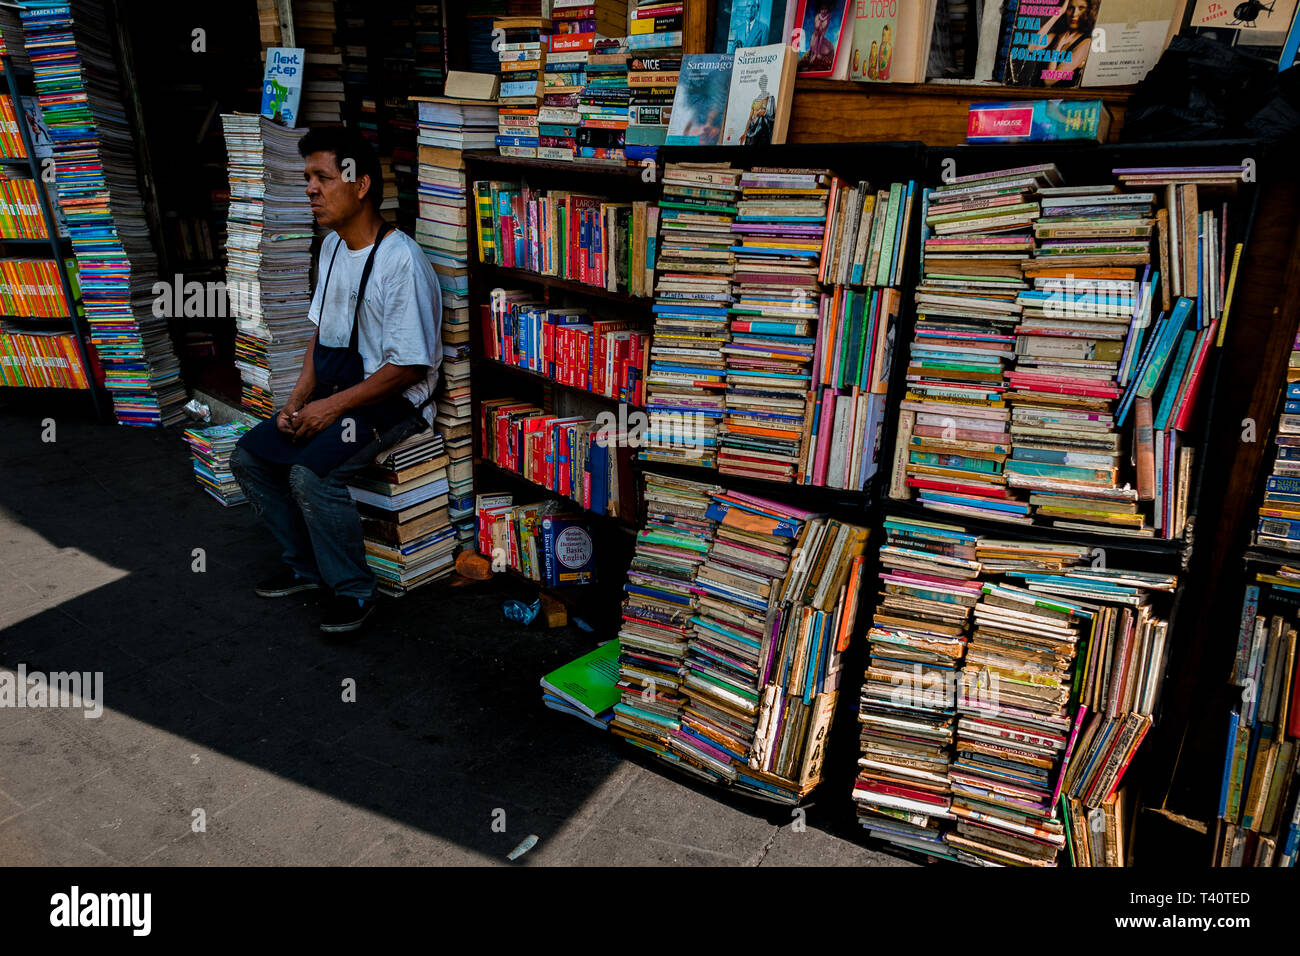 A Salvadoran bookseller sits in front of stacks of used books piled on the street in a secondhand bookshop in San Salvador, El Salvador. - Stock Image